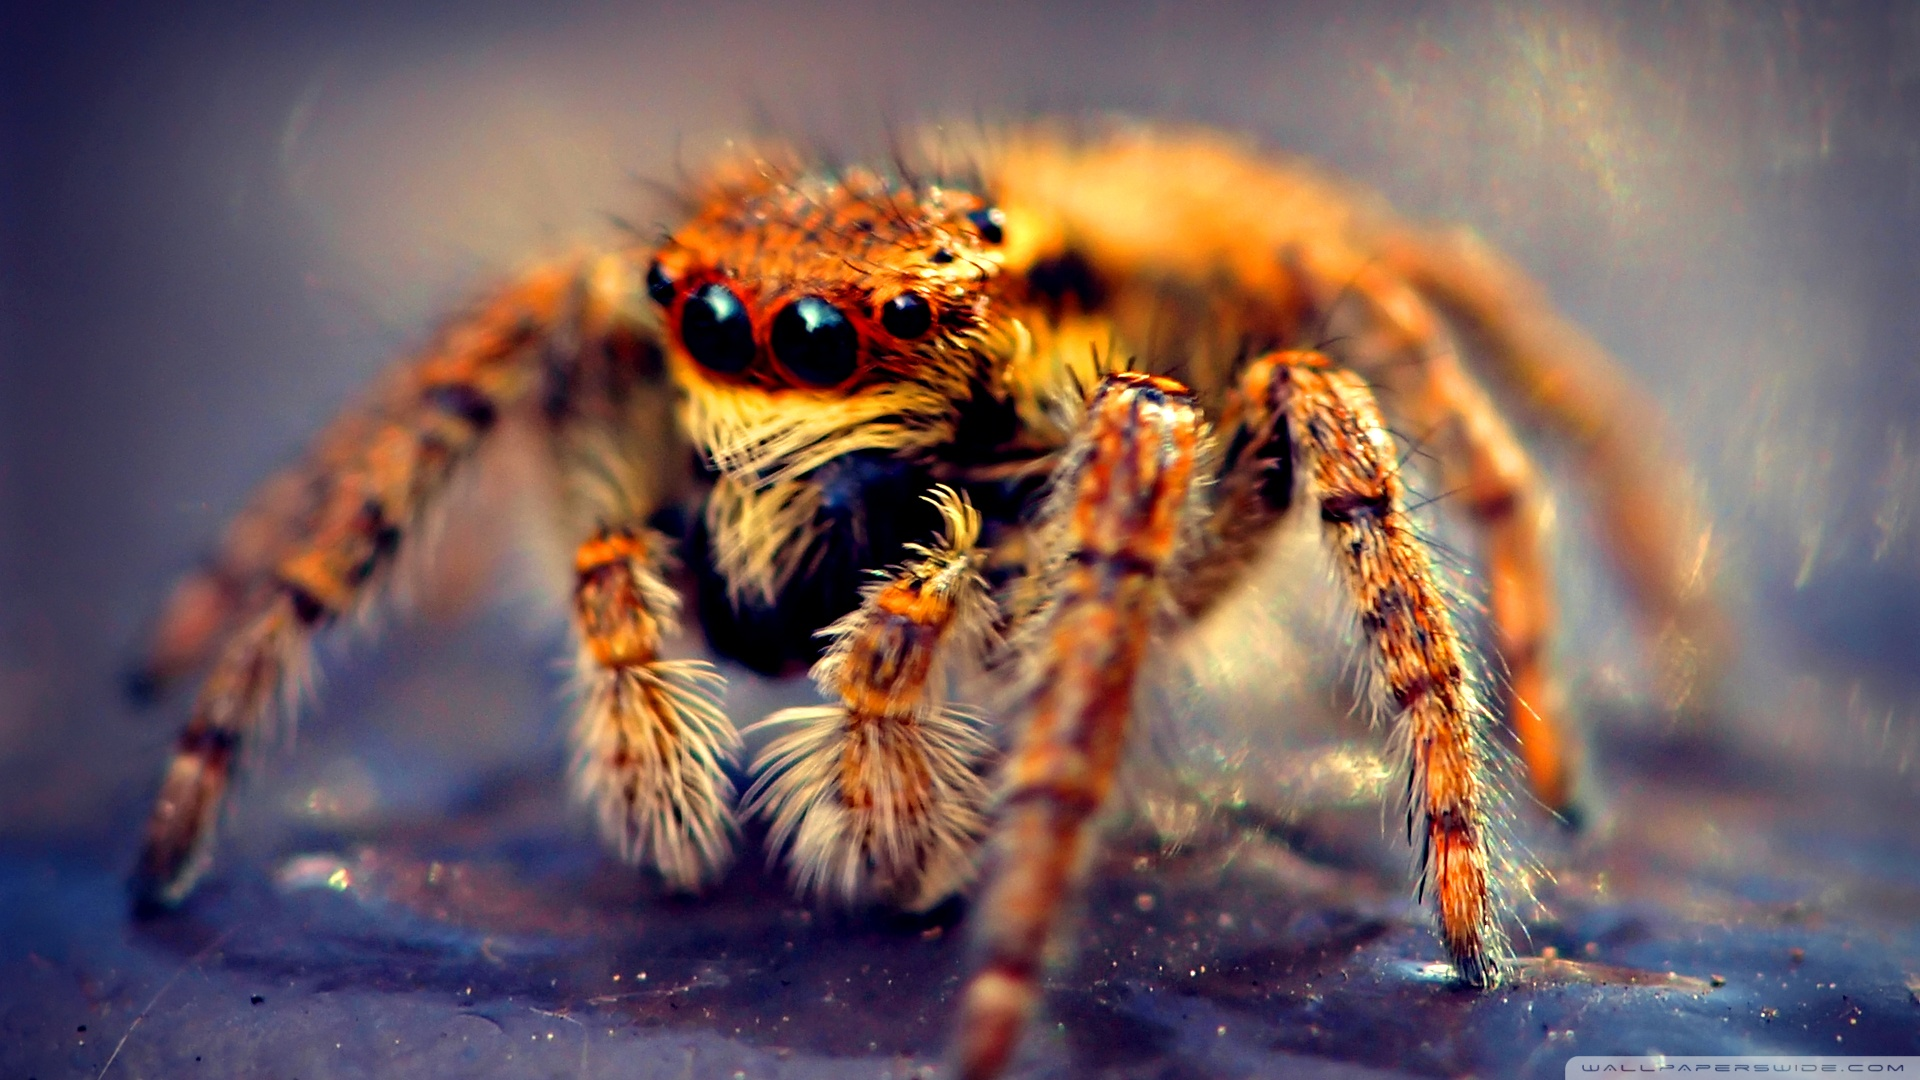 spider hd wallpaper | background image | 1920x1080 | id:504272